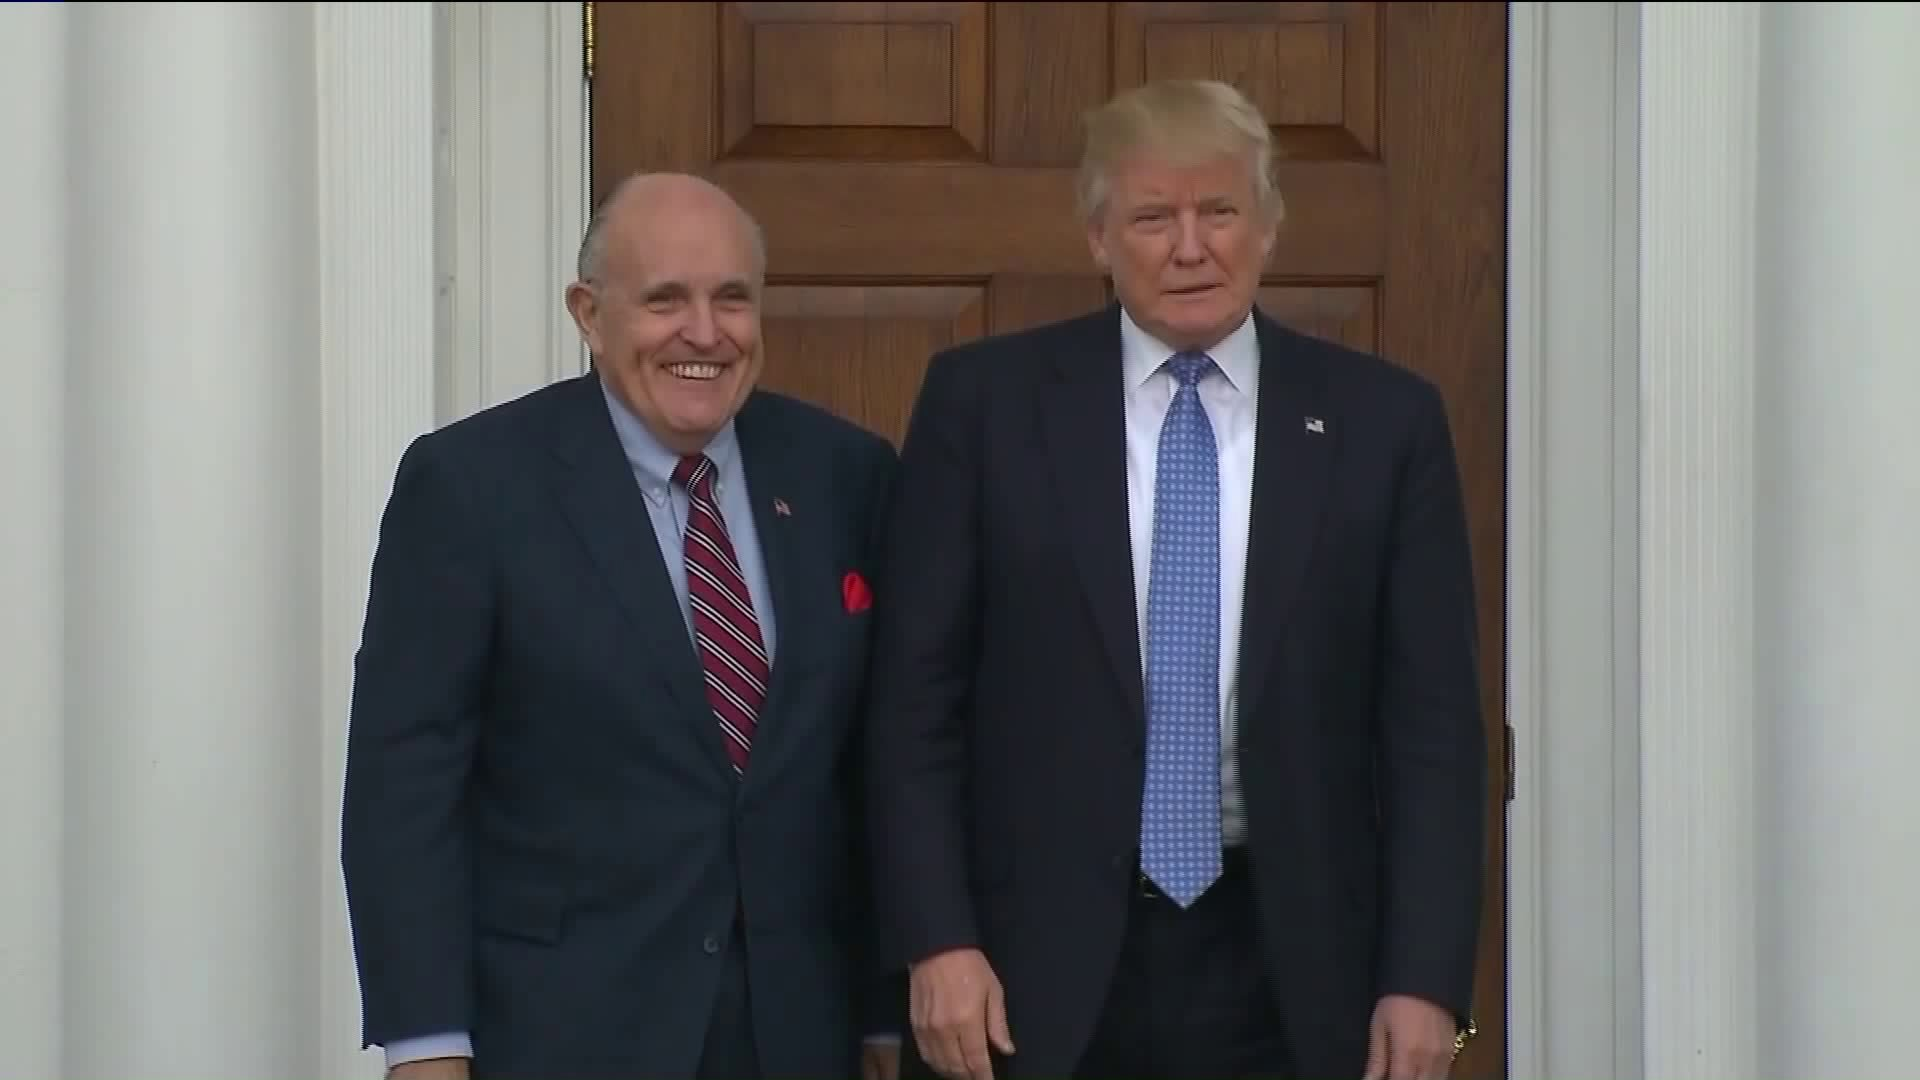 Giuliani may have infected 'hundreds' with deadly COVID-19